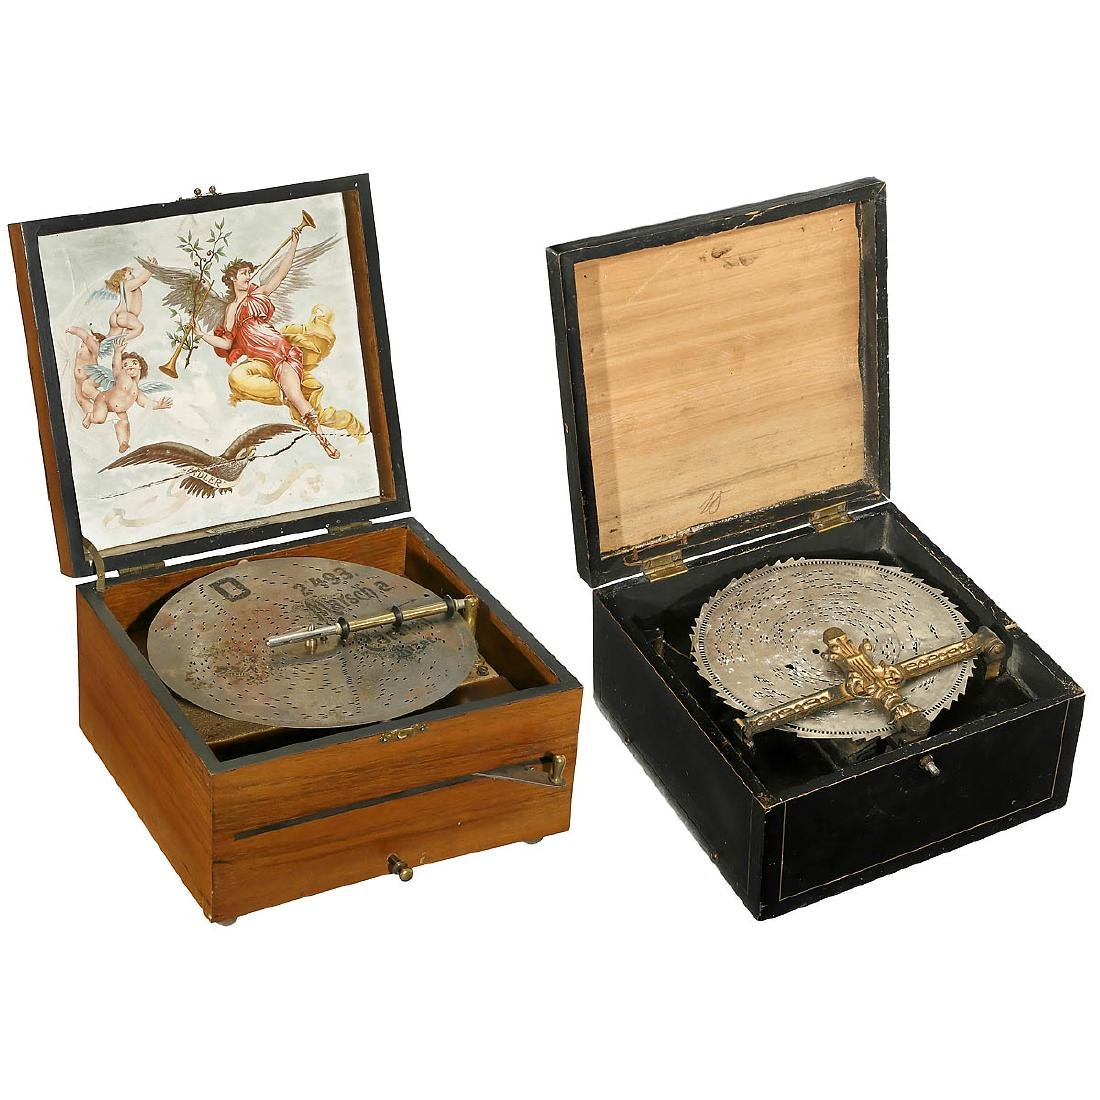 2 Disc Musical Boxes, c. 1900